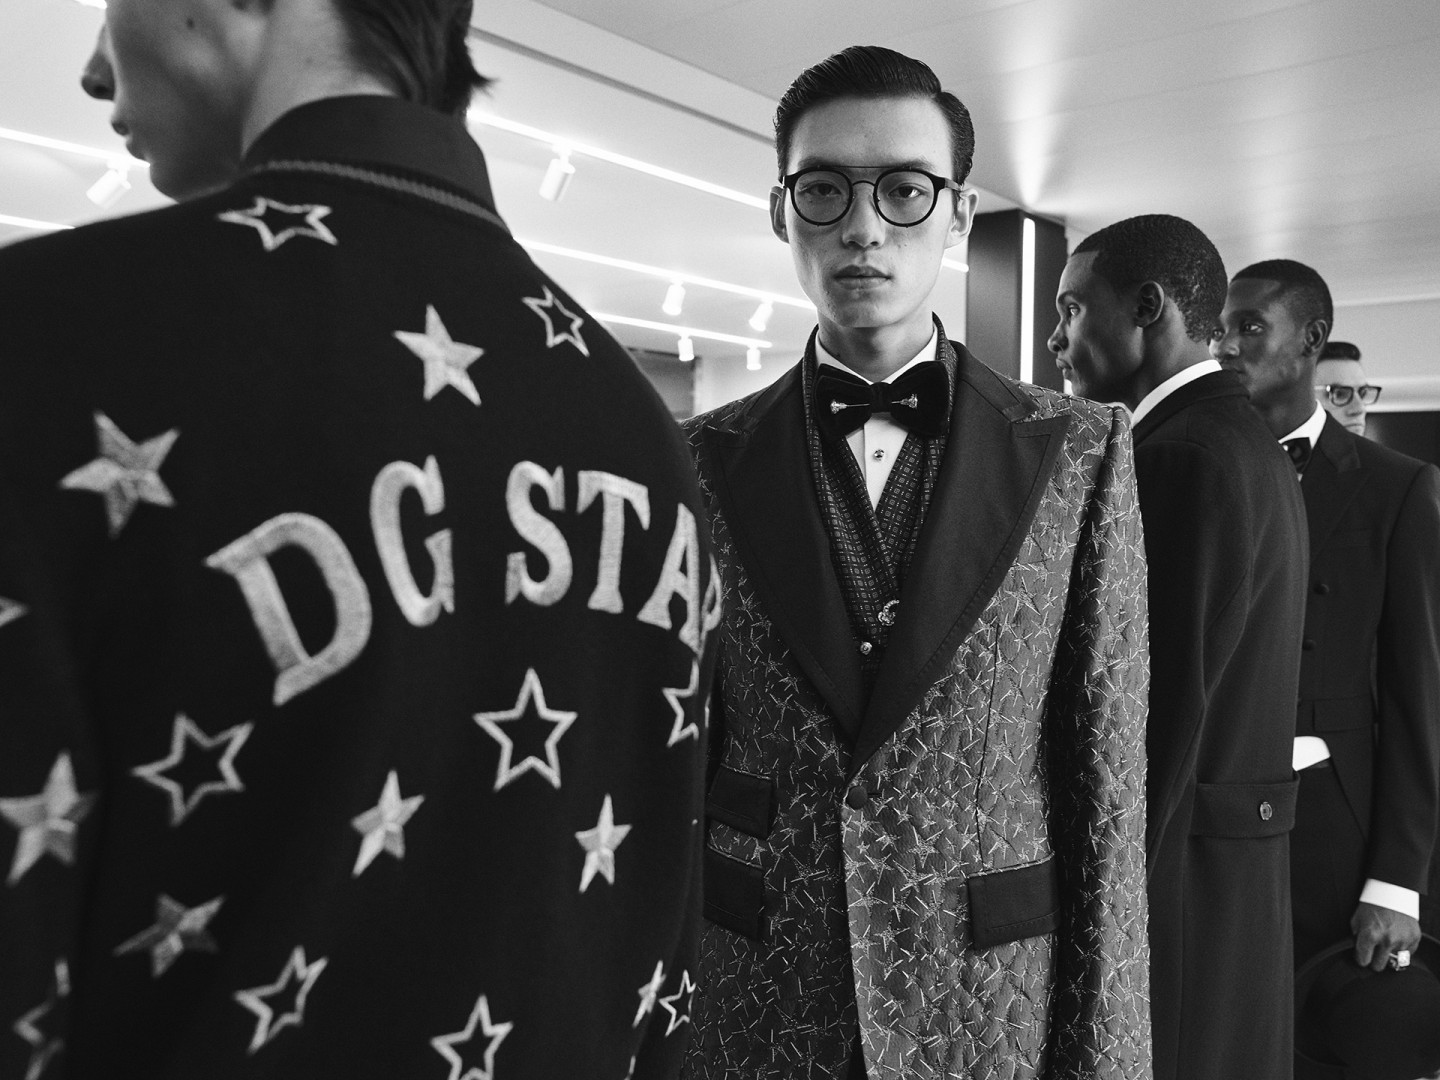 Dolce & Gabbana Fall Winter 19 collection